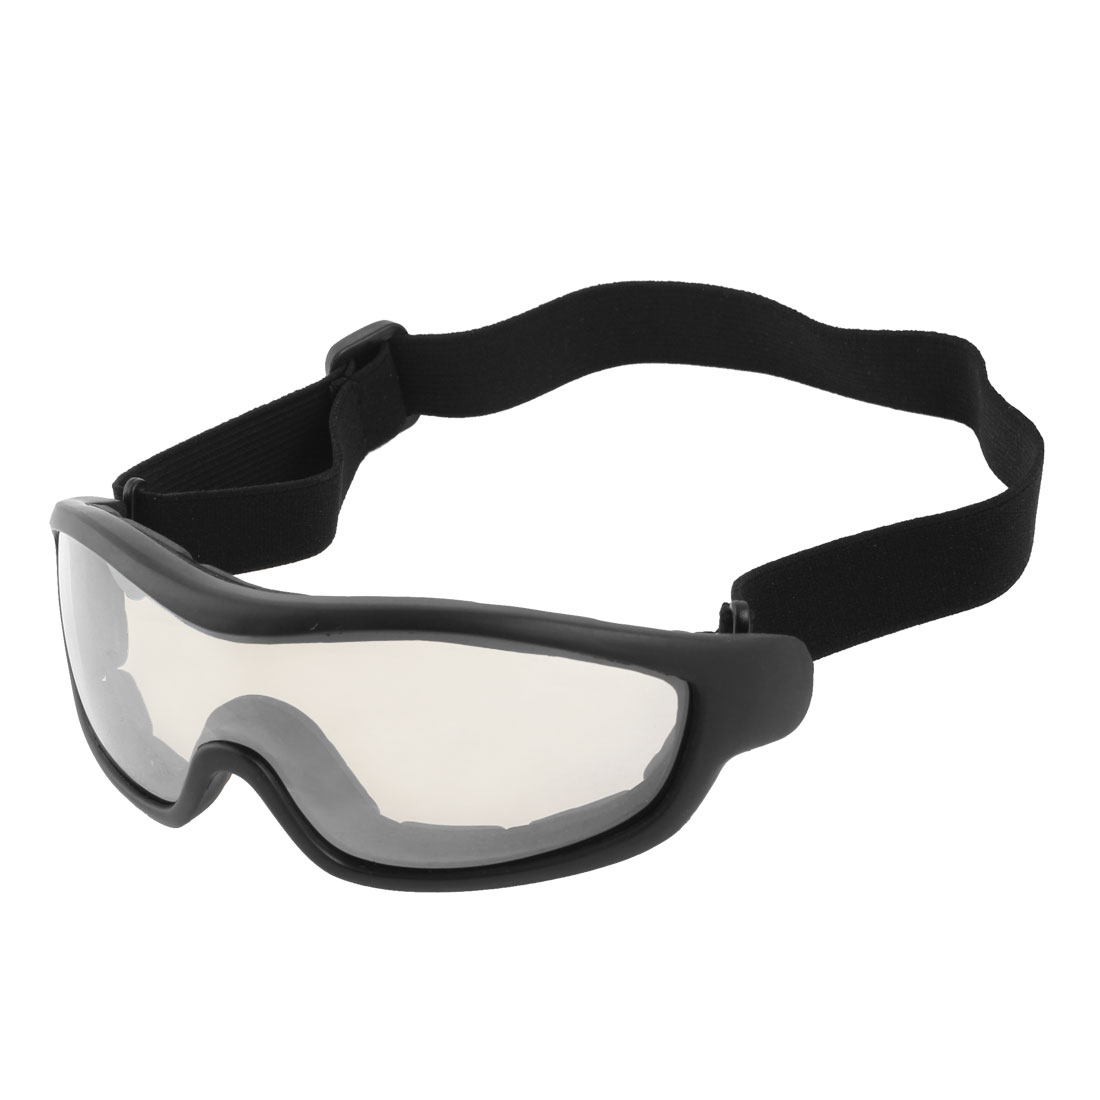 UV Protection Clear White Lens Ski Snowboard Skate Sports Goggles Glasses Black